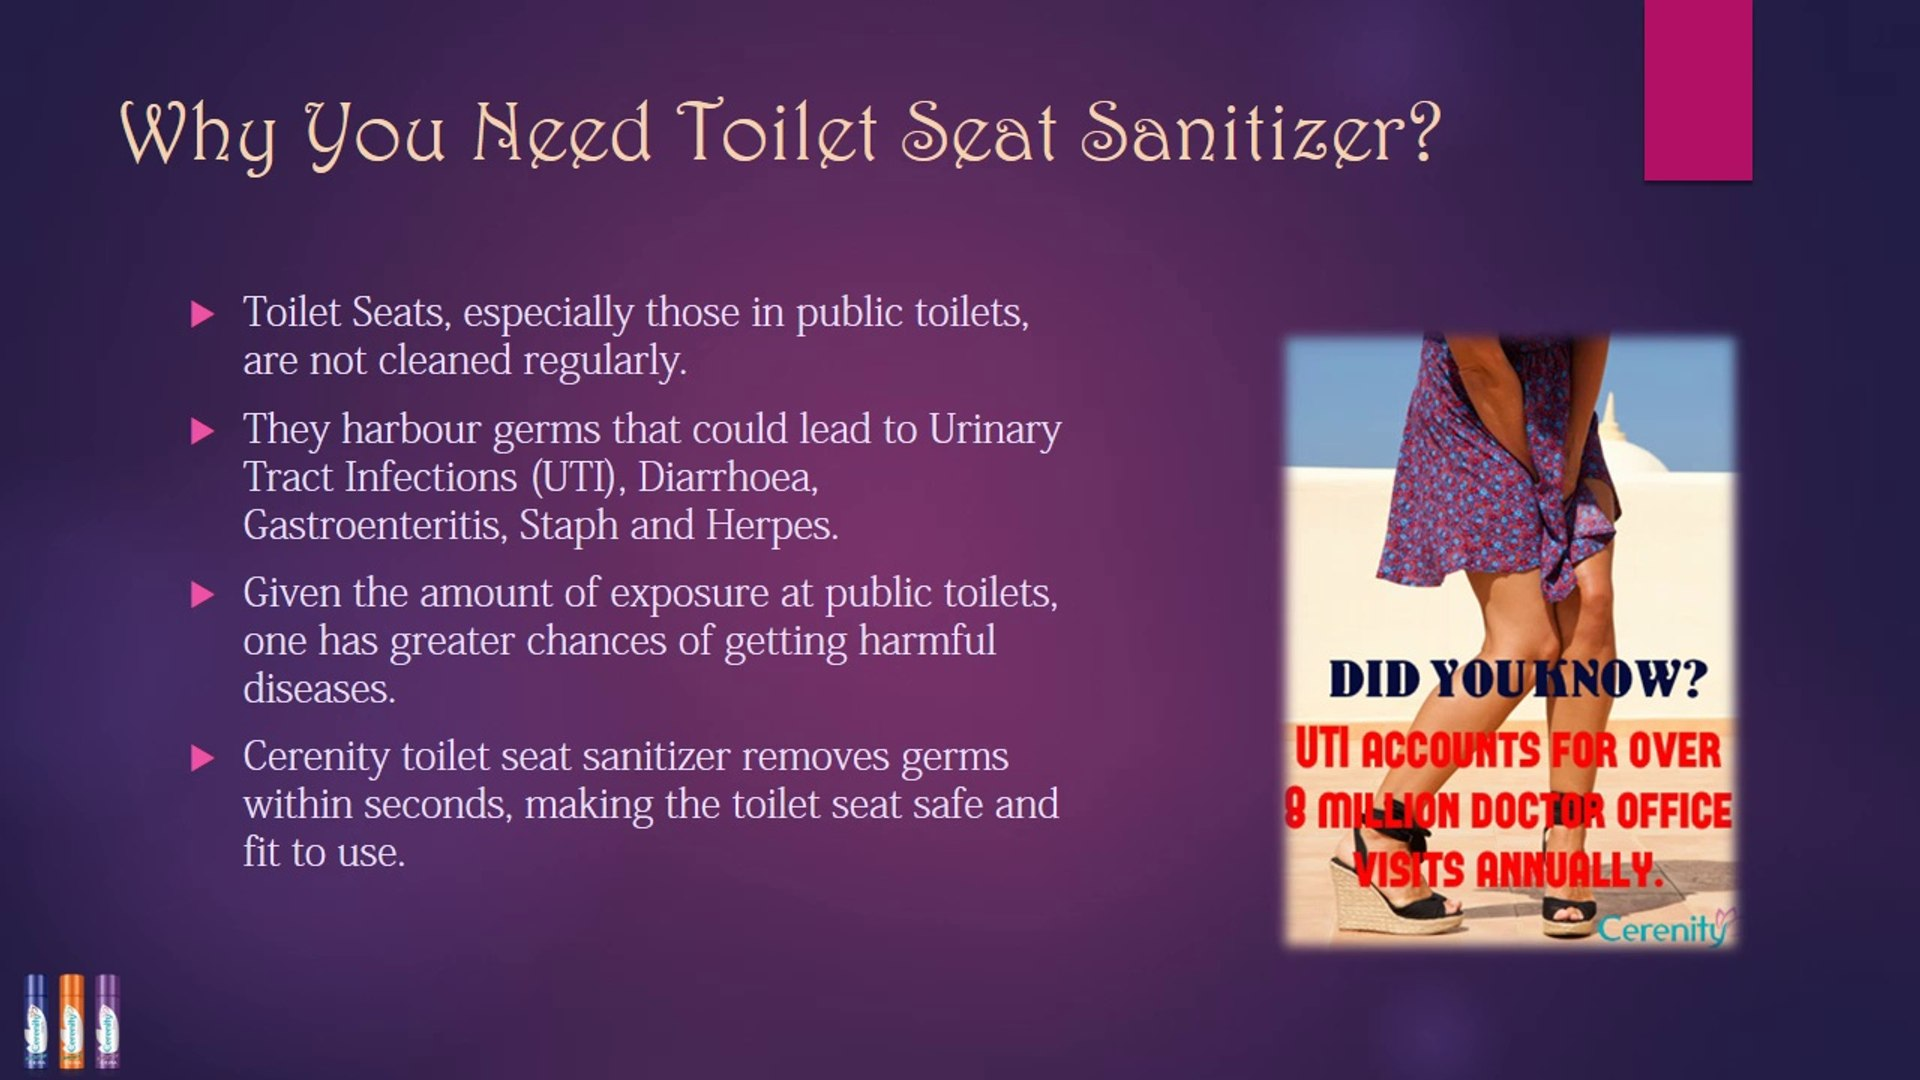 Tremendous Toilet Seat Sanitizer From Cerenity Video Dailymotion Bralicious Painted Fabric Chair Ideas Braliciousco